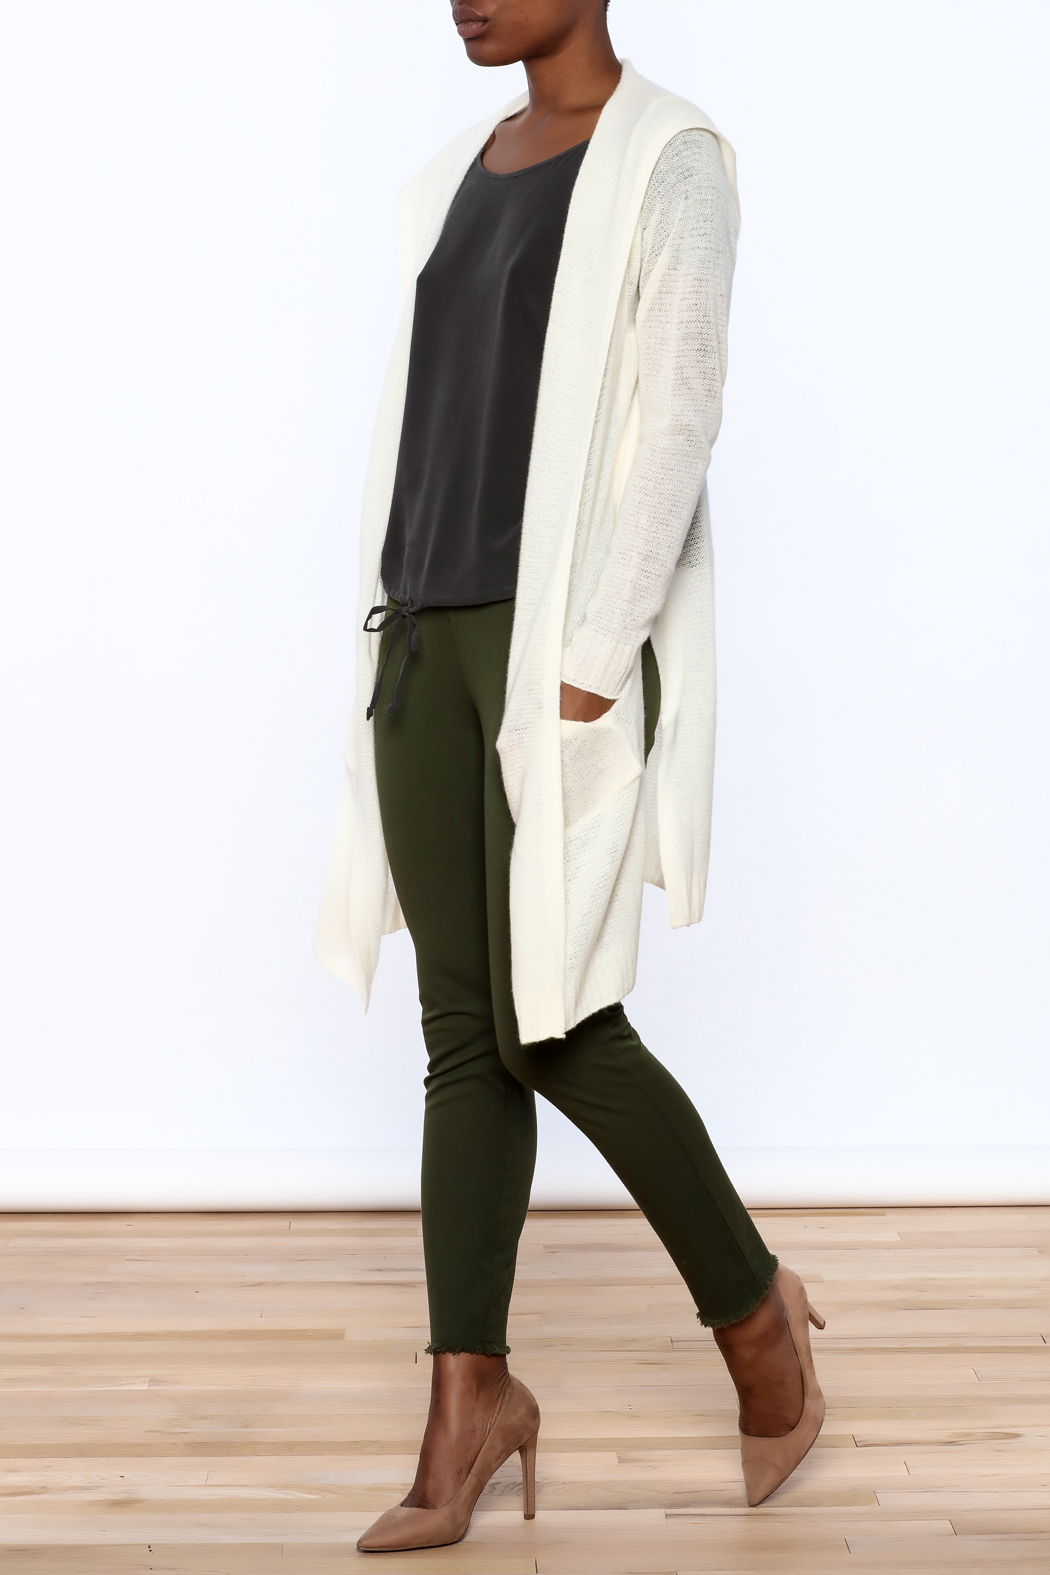 White + Warren White Cashmere Cardigan - Front Full Image